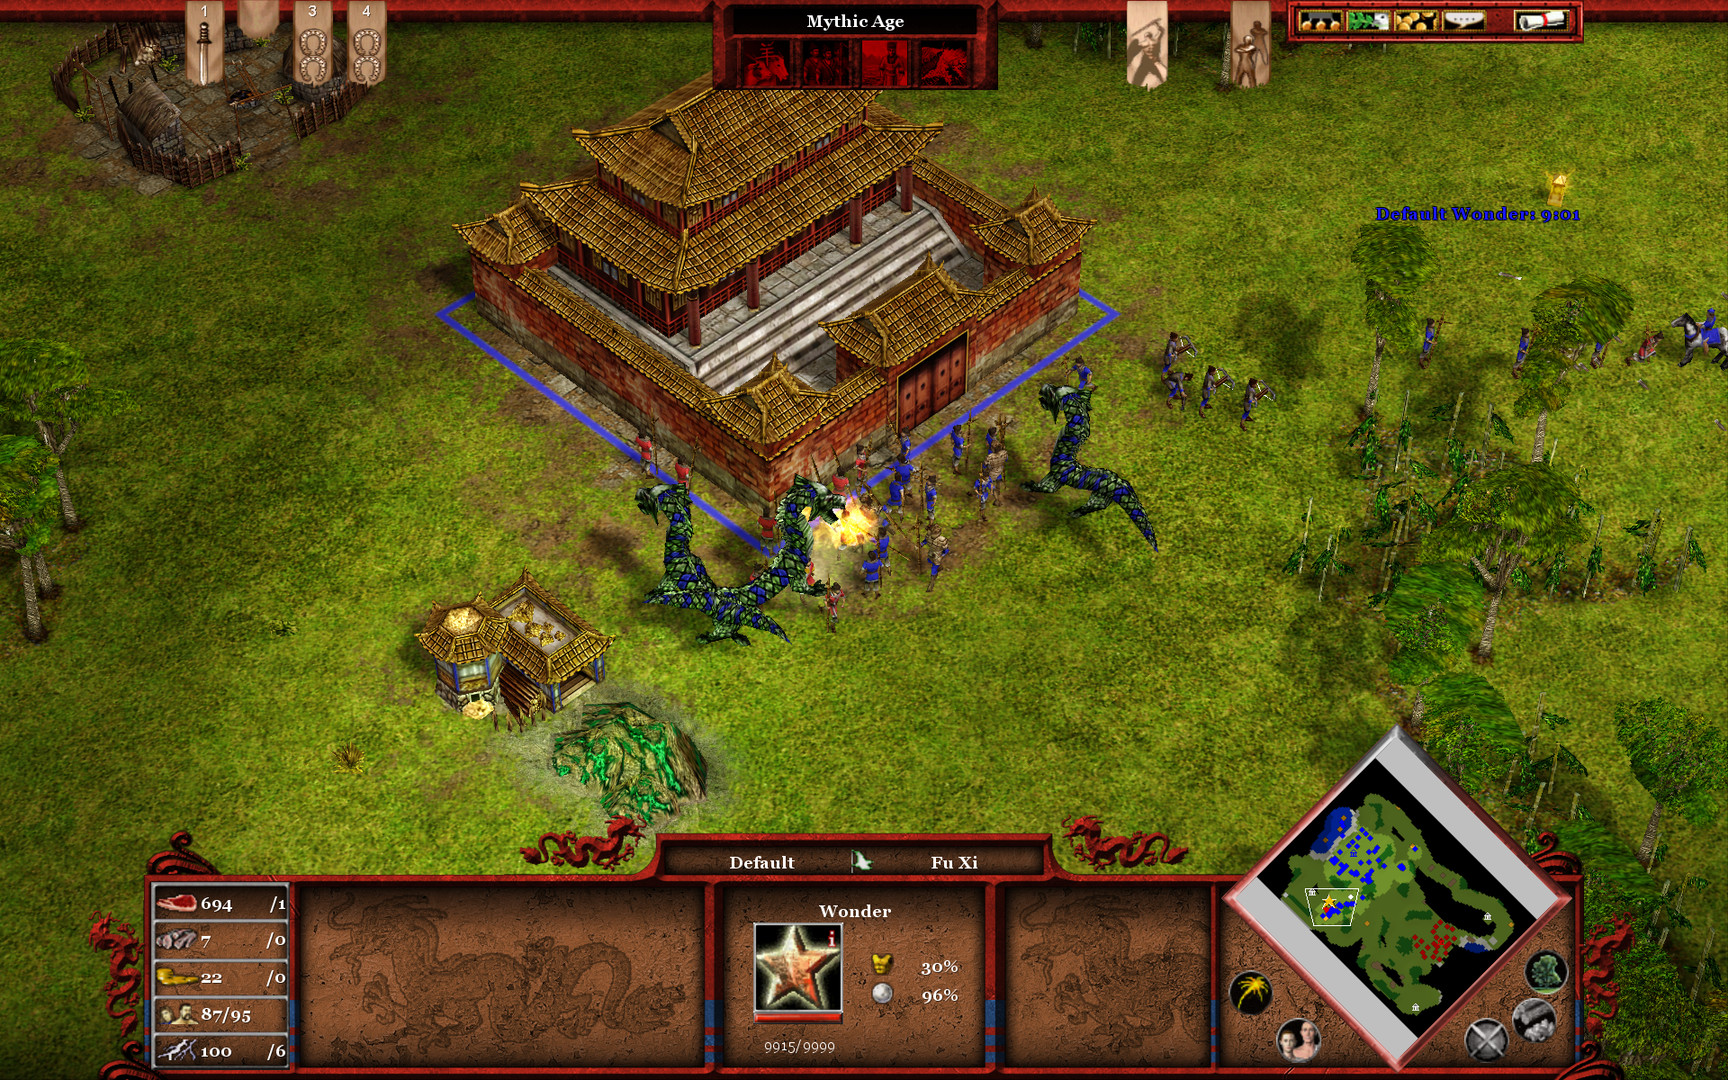 Age of Mythology EX: Tale of the Dragon Screenshot 1